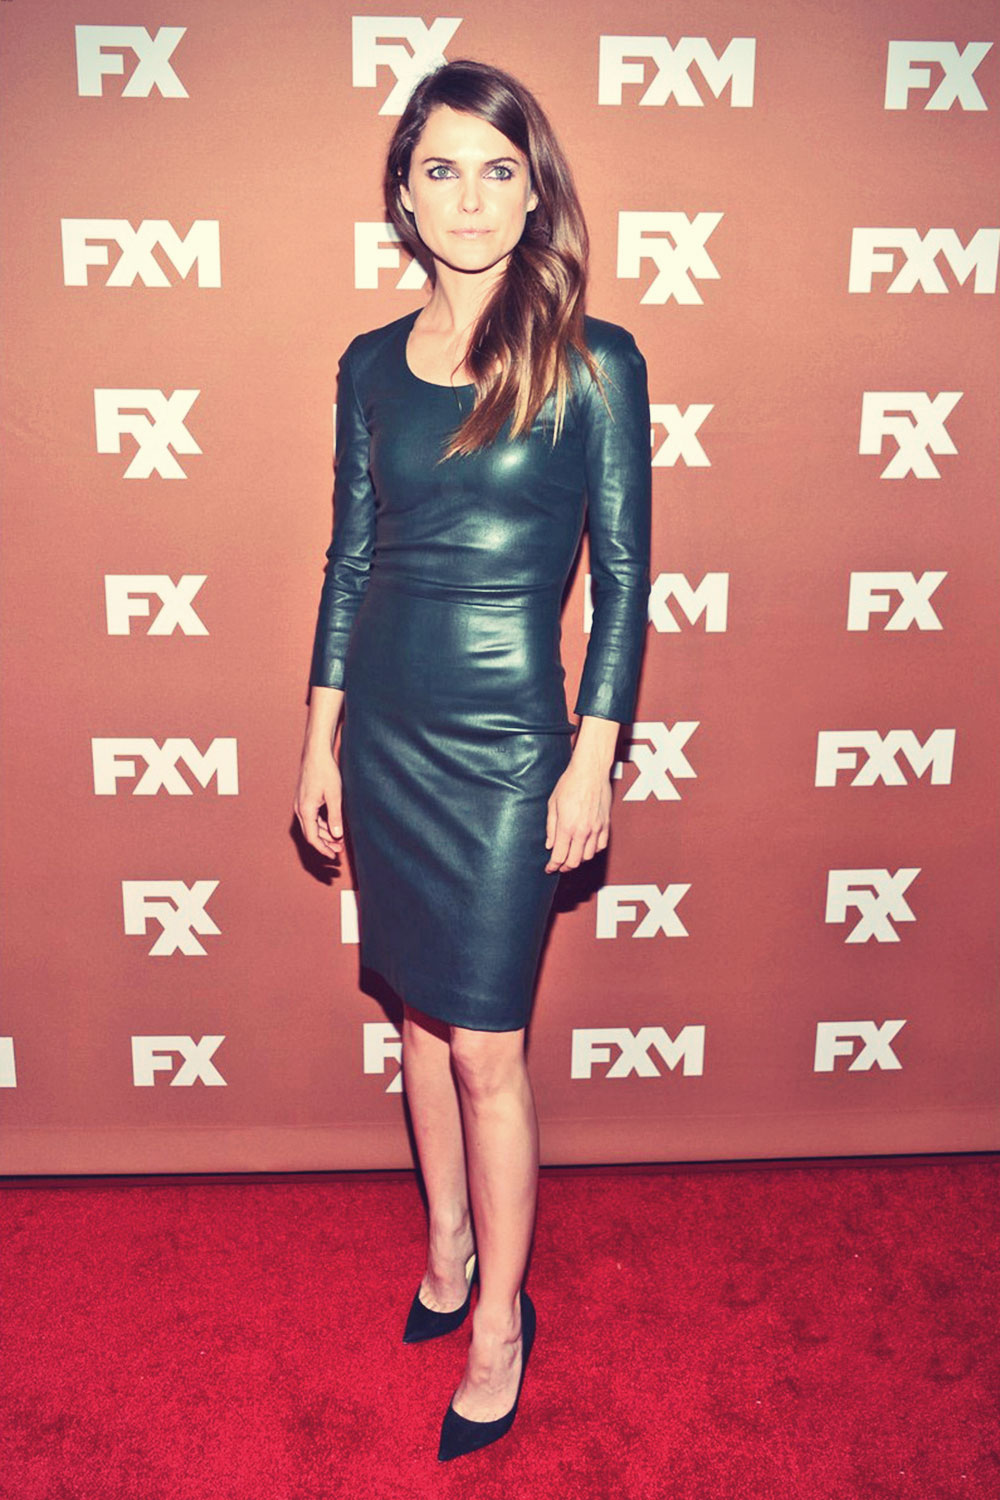 Keri Russell hits the red carpet at the 2013 FX Upfront Bowling Event